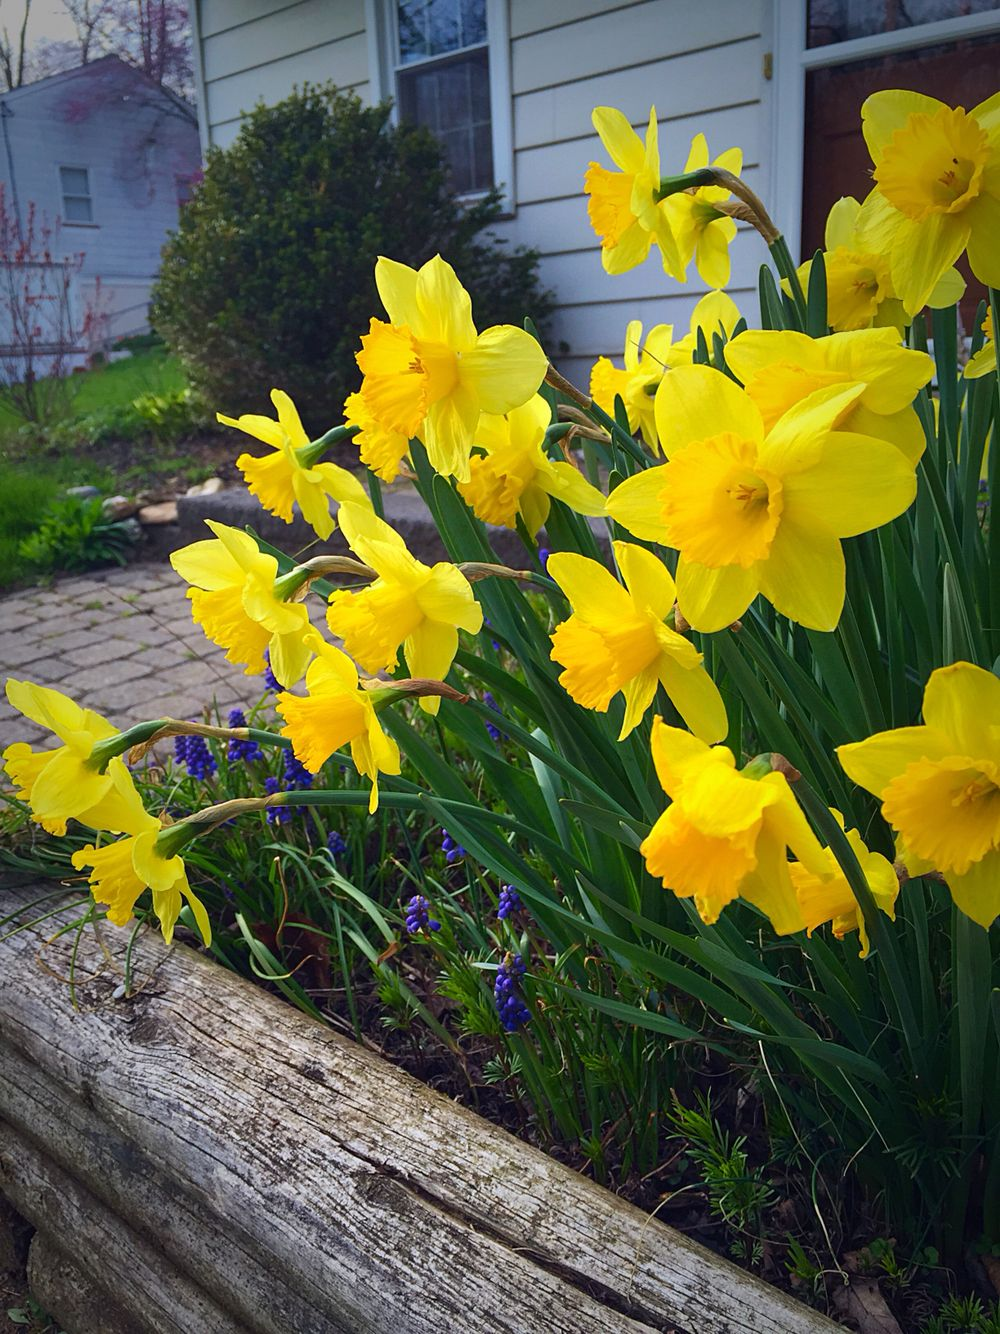 Pretty Yellow Flowers Artsy Pinterest Yellow Flowers And Artsy